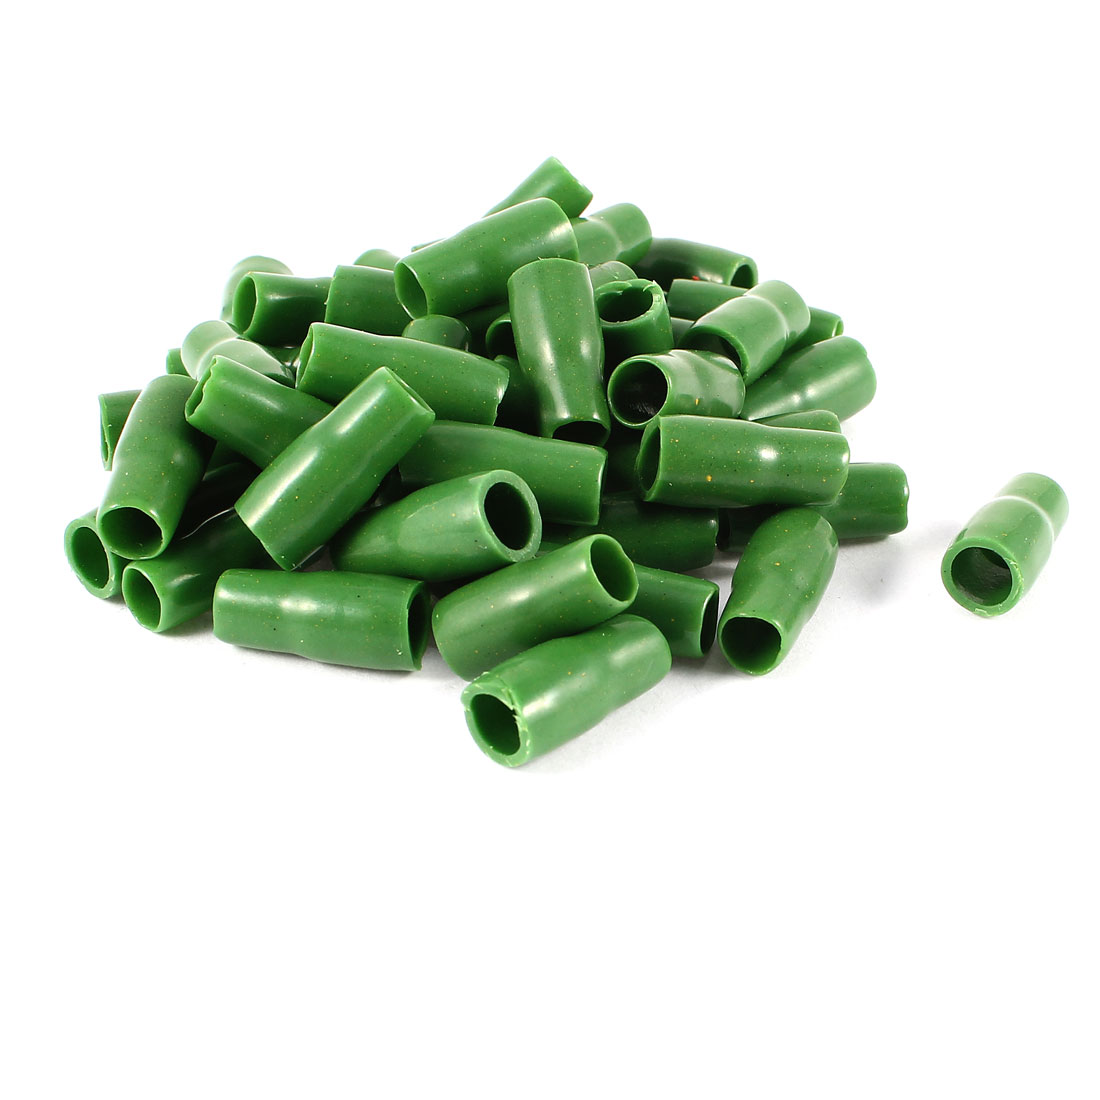 50 Pcs Green Soft PVC Wire V-8 10mm2 Crimp Terminal End Insulated Sleeves Caps Cover